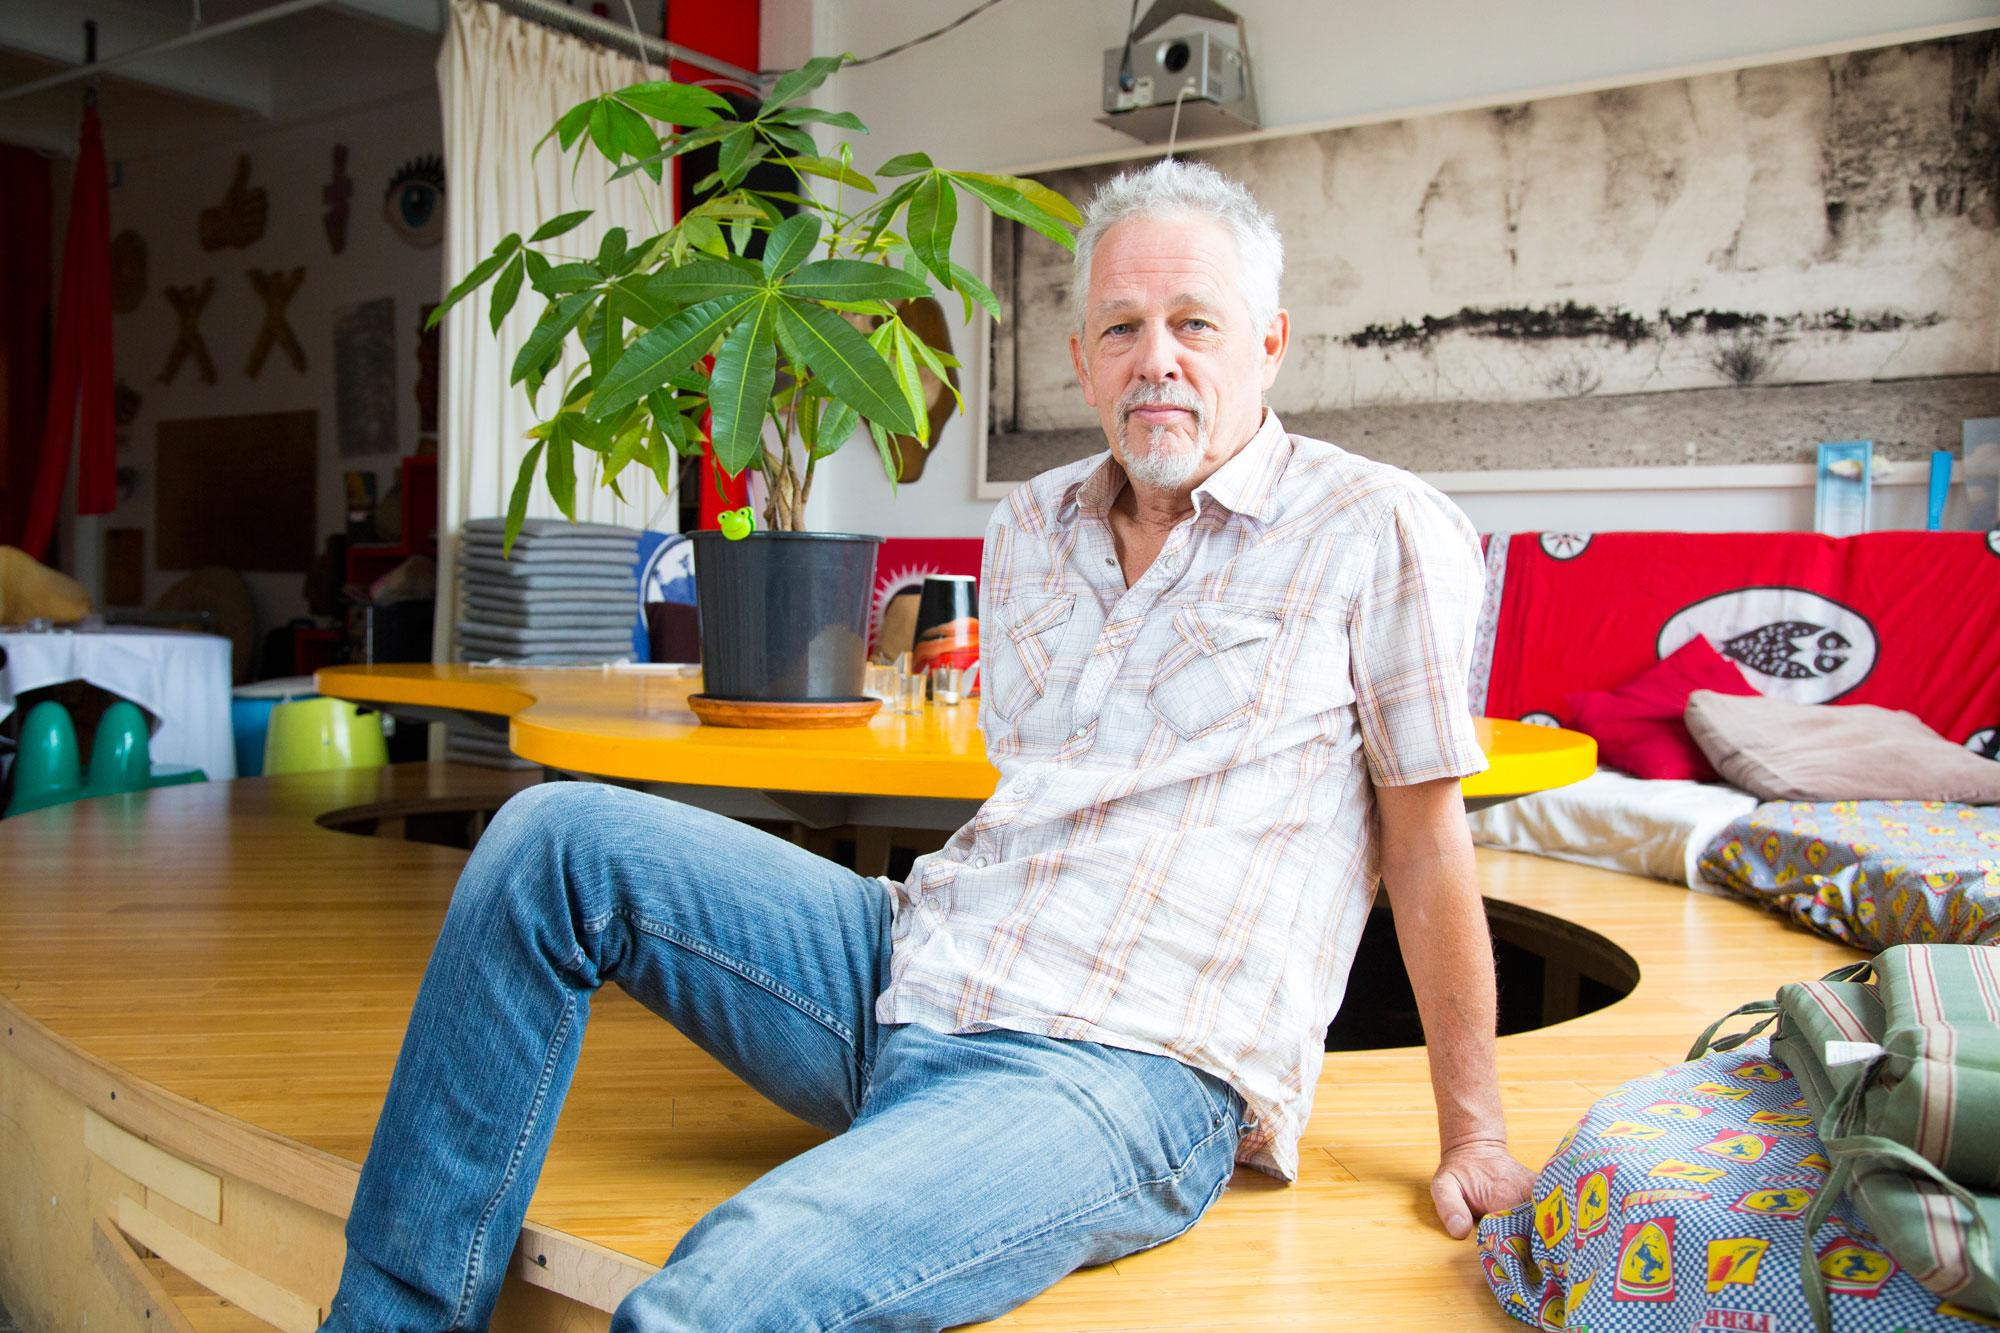 Meet Christo Holloway, Whose Loft Has No Walls But Lots of Airbnb Guests